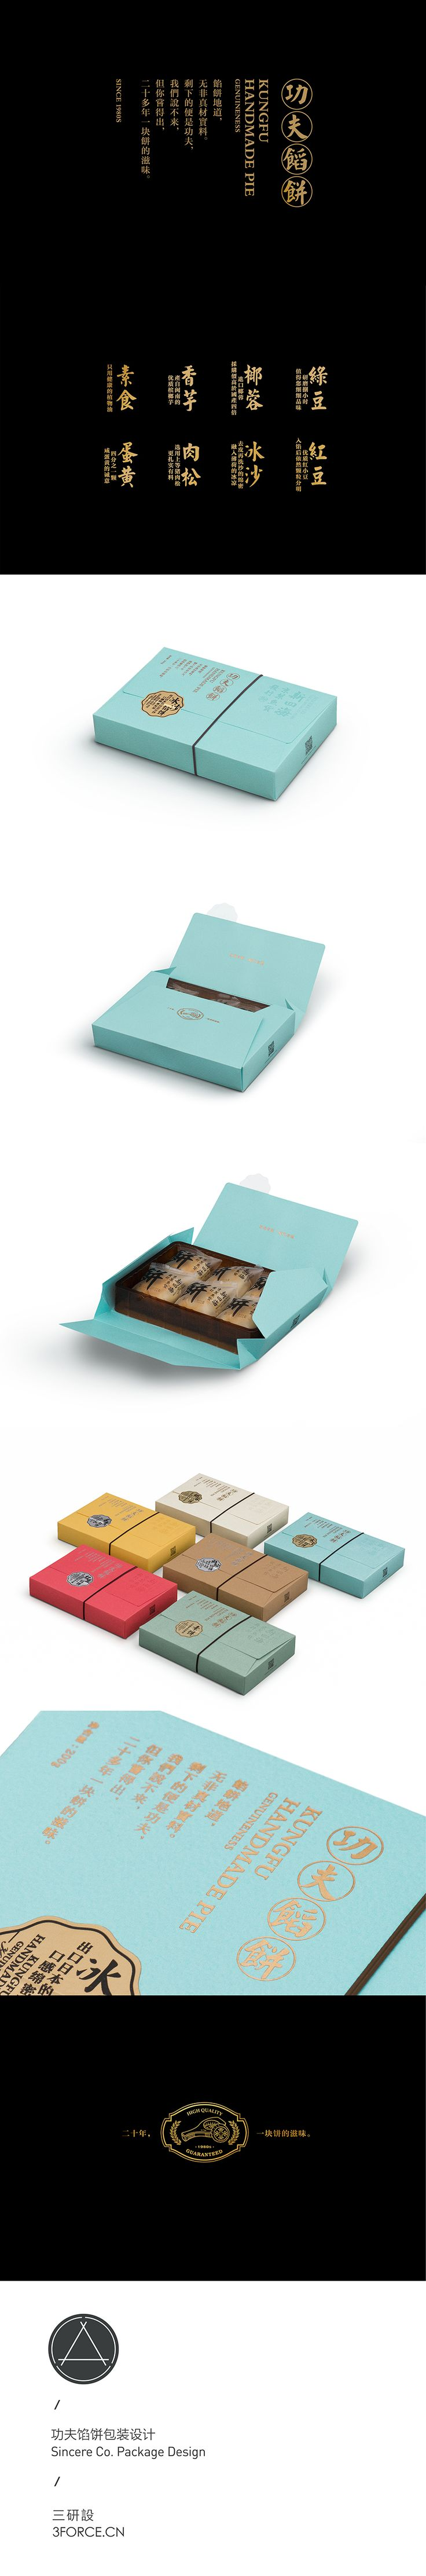 KUNGFU Handmade Pie Packaging Design / 功夫餡餅產品包裝設計 on Behance PD